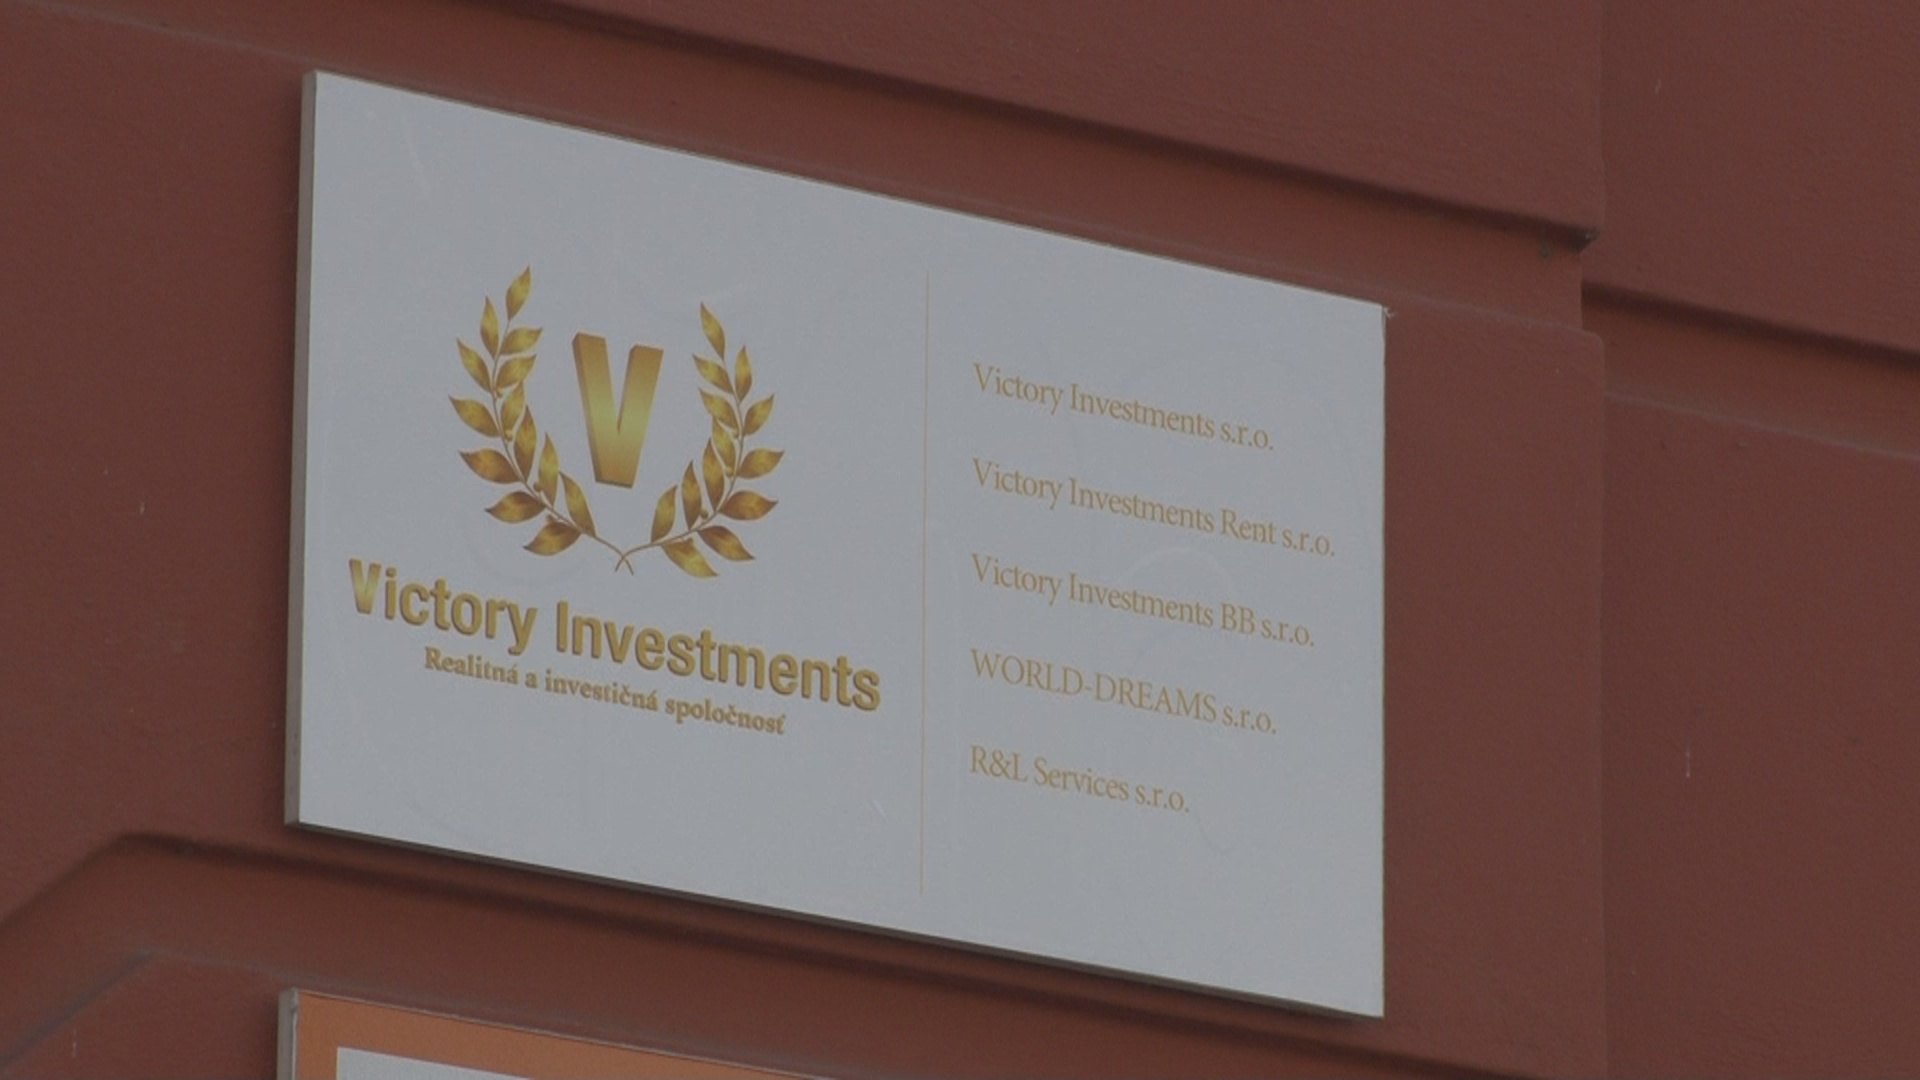 Video Victory Investments s.r.o. Banská Bystrica